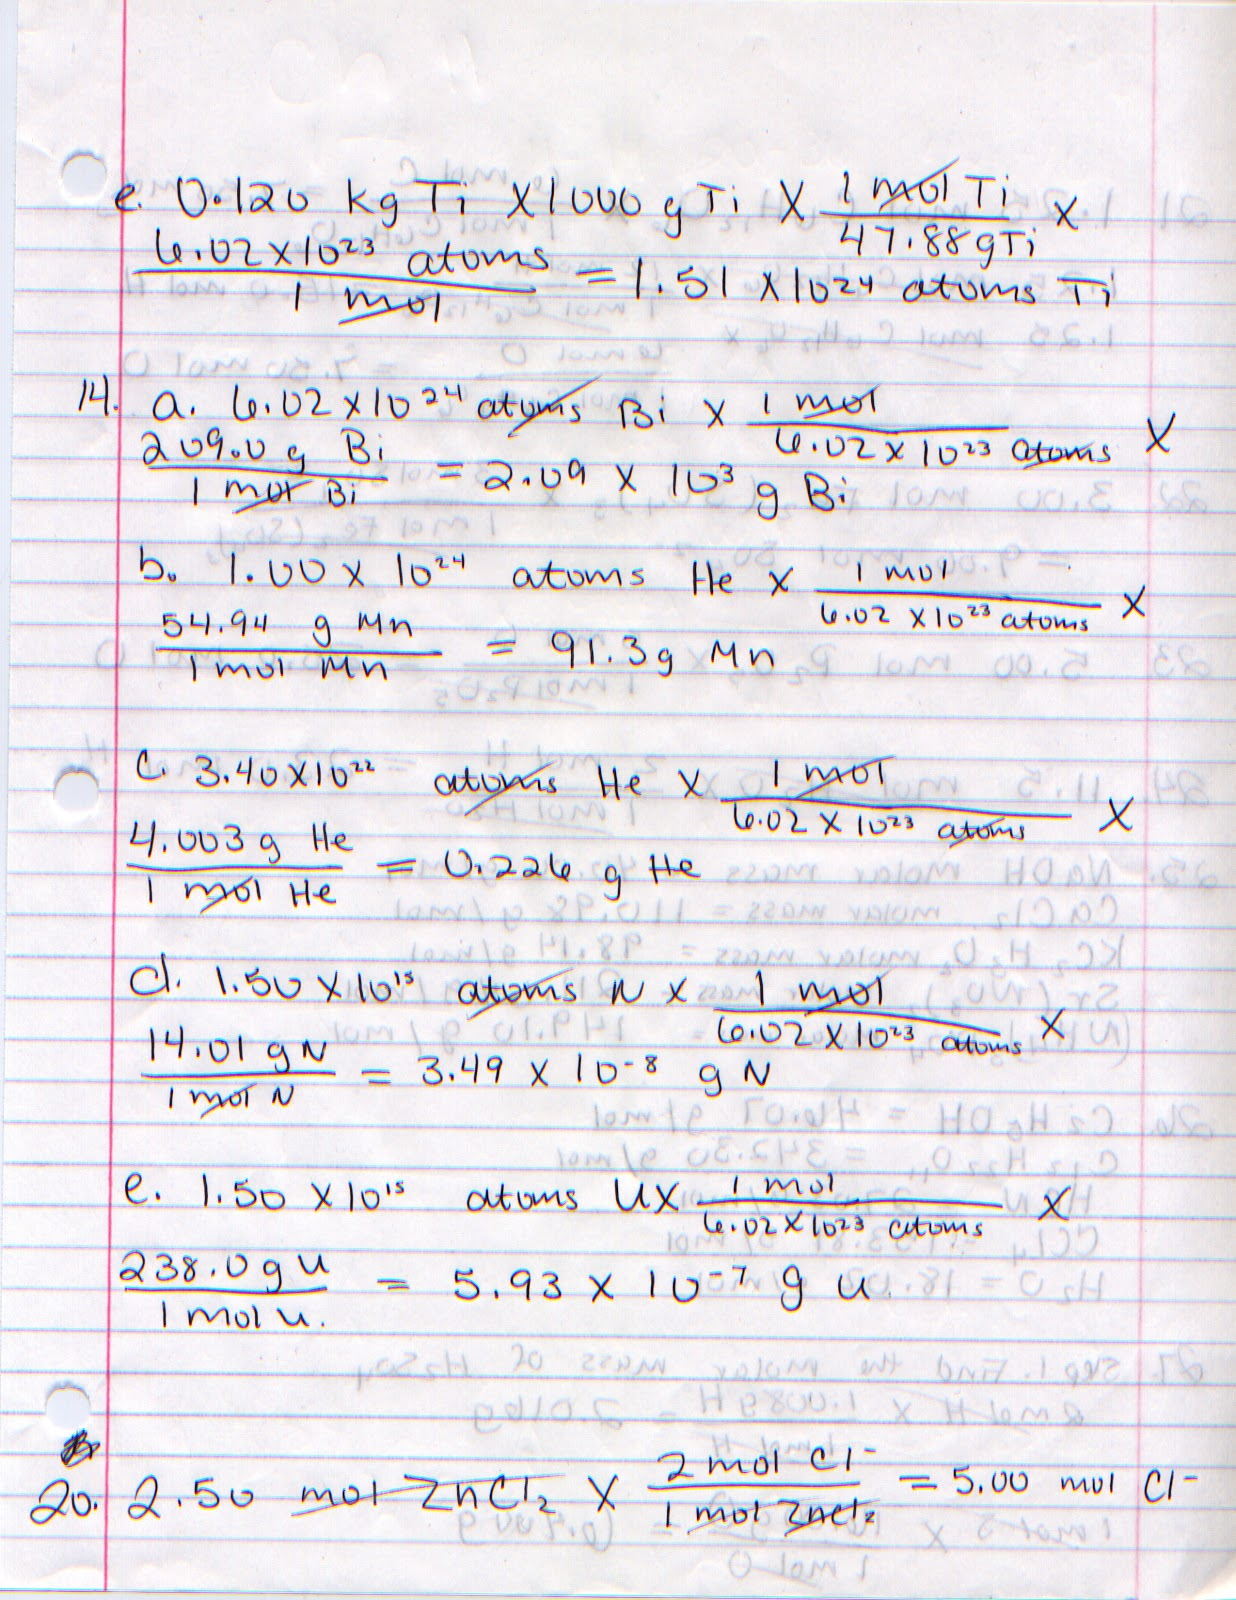 Kassidy S Penny S Chemistry Blog Mole Calculations